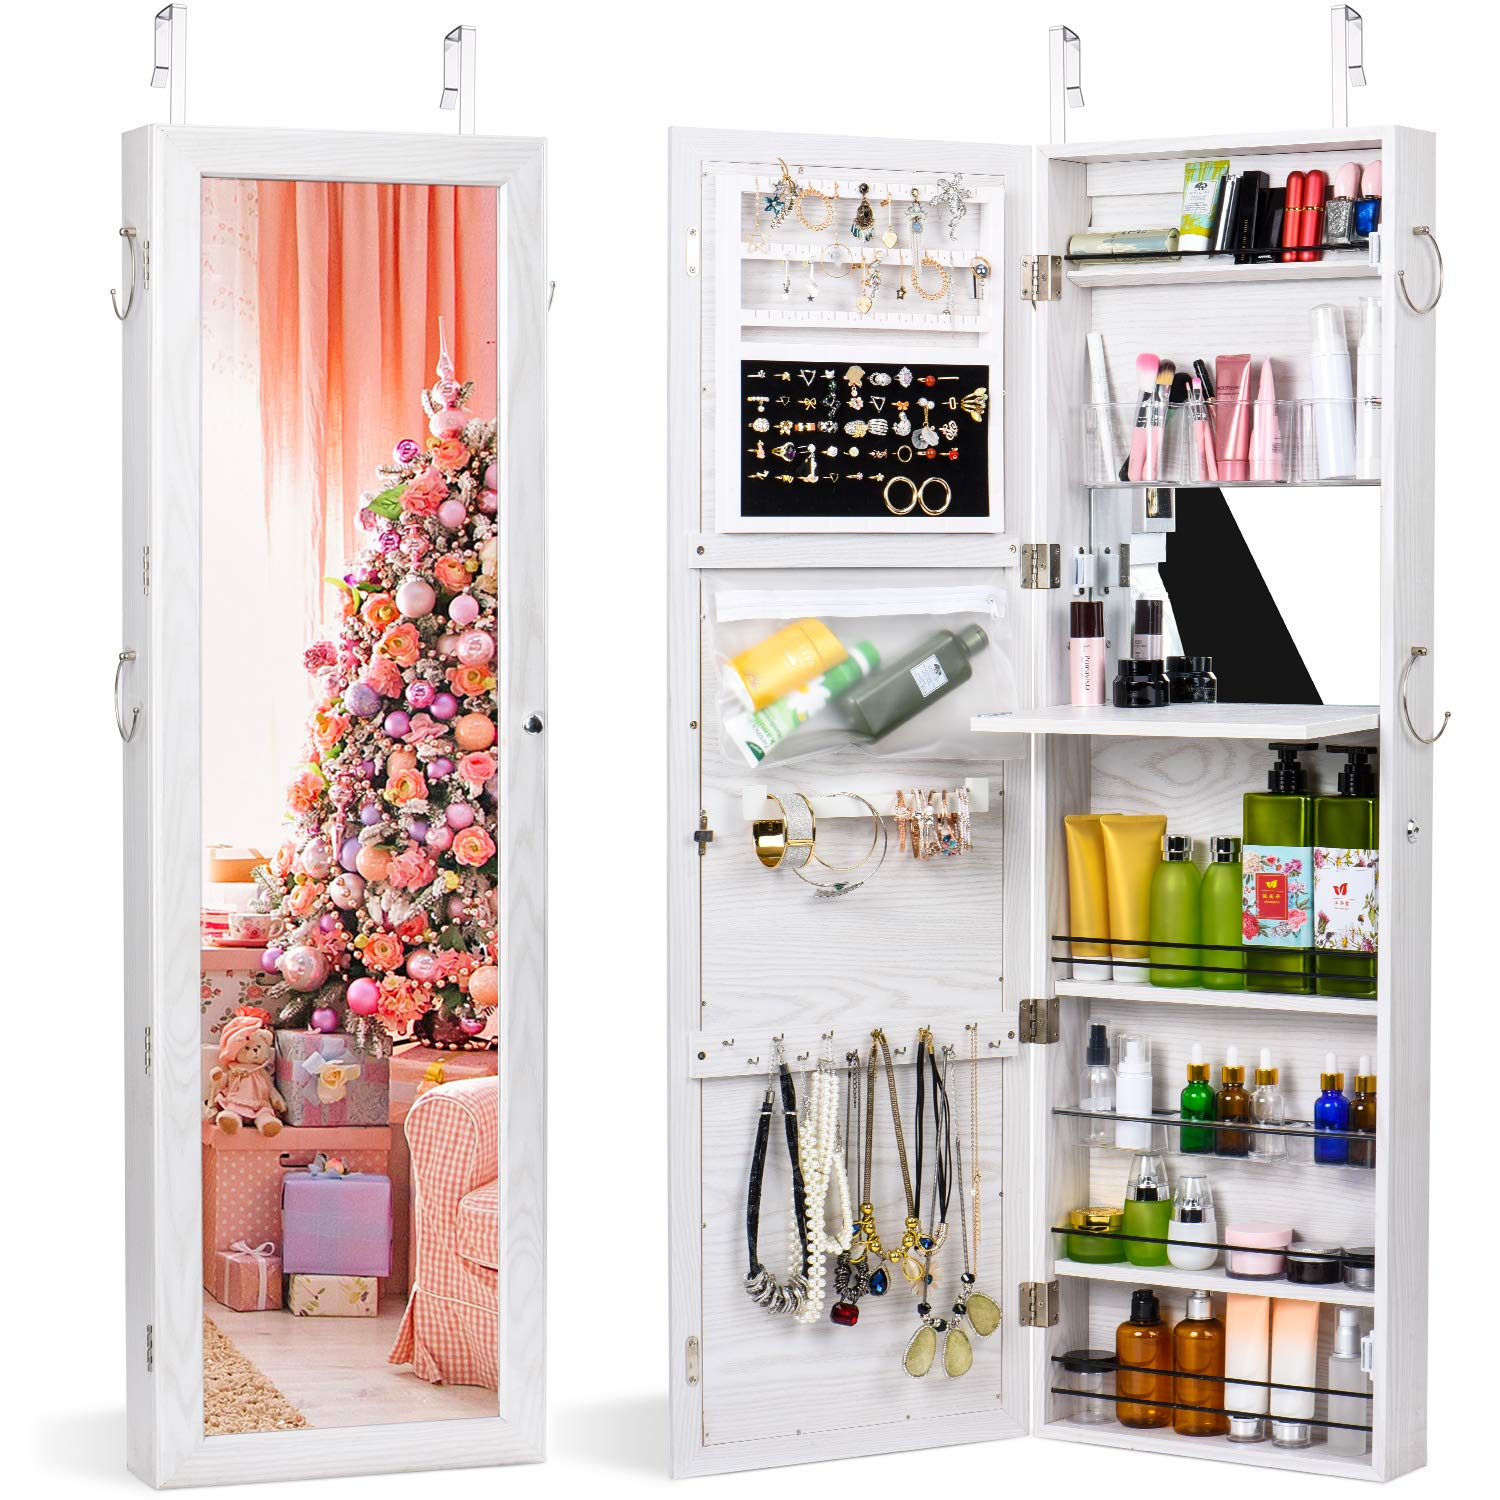 TWING Jewelry Armoire Cabinet Wall Door Mounted Jewelry Armoire with Full-Length Mirror Lockable Large Jewelry Organizer(White) by TWING